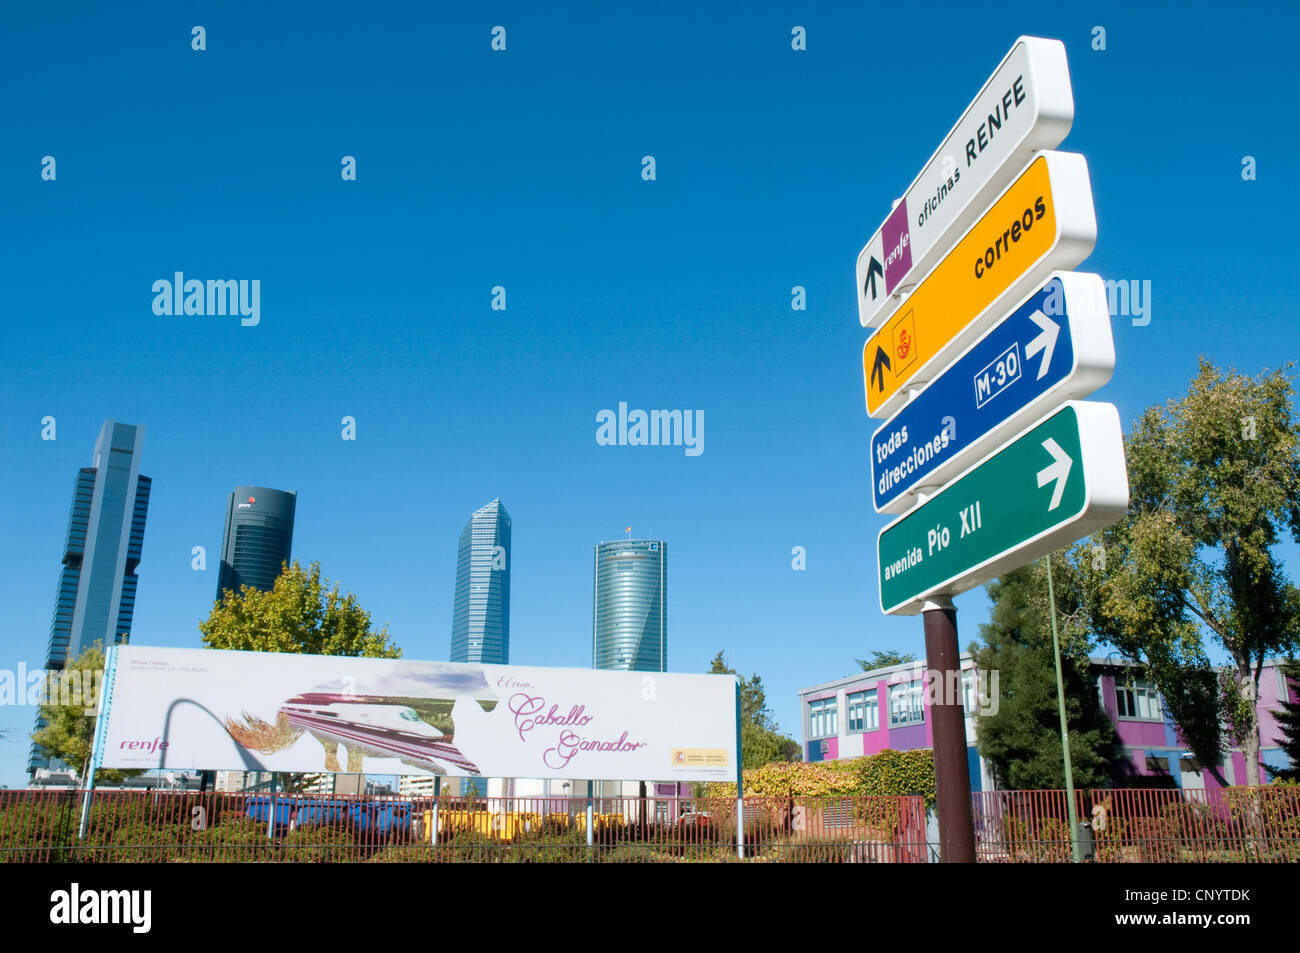 Four Towers from Chamartin Railway Station. Madrid, Spain. - Stock Image